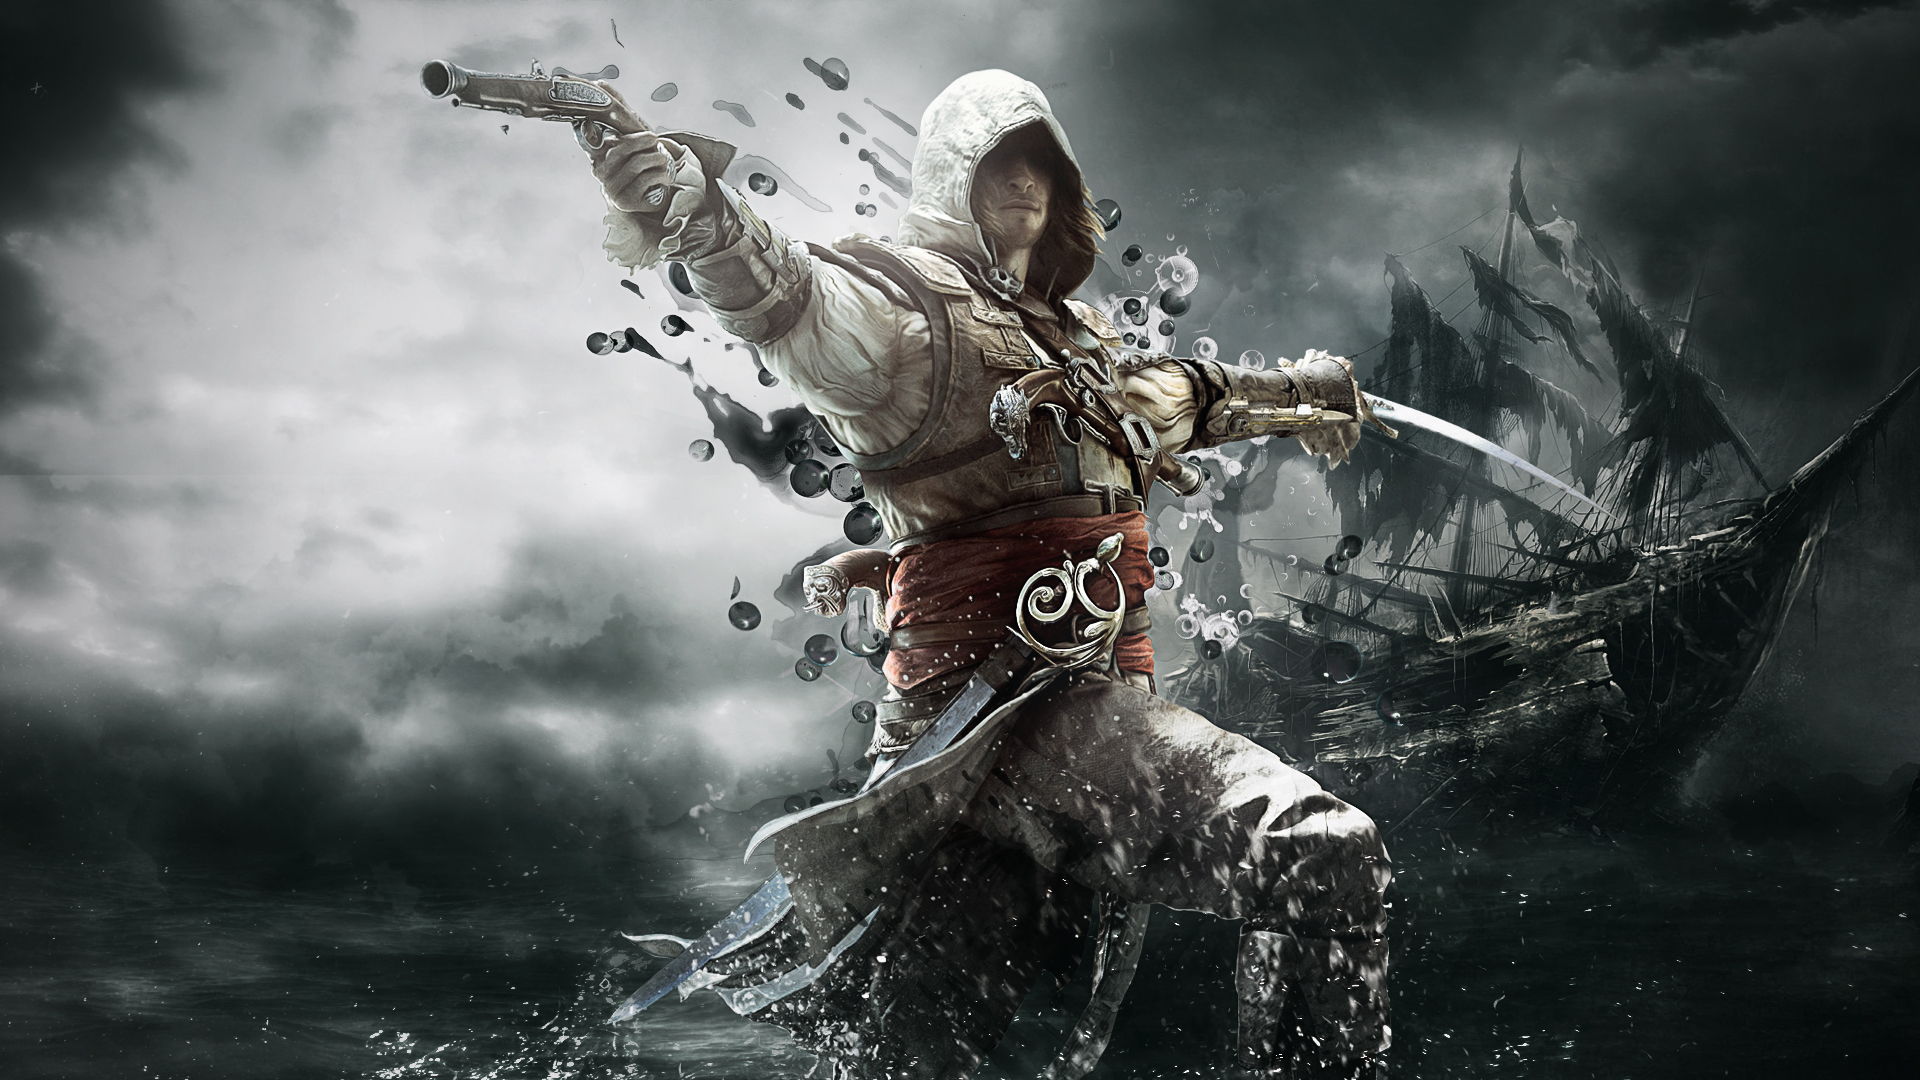 assassin_creed_black_flag 17102013 artwork